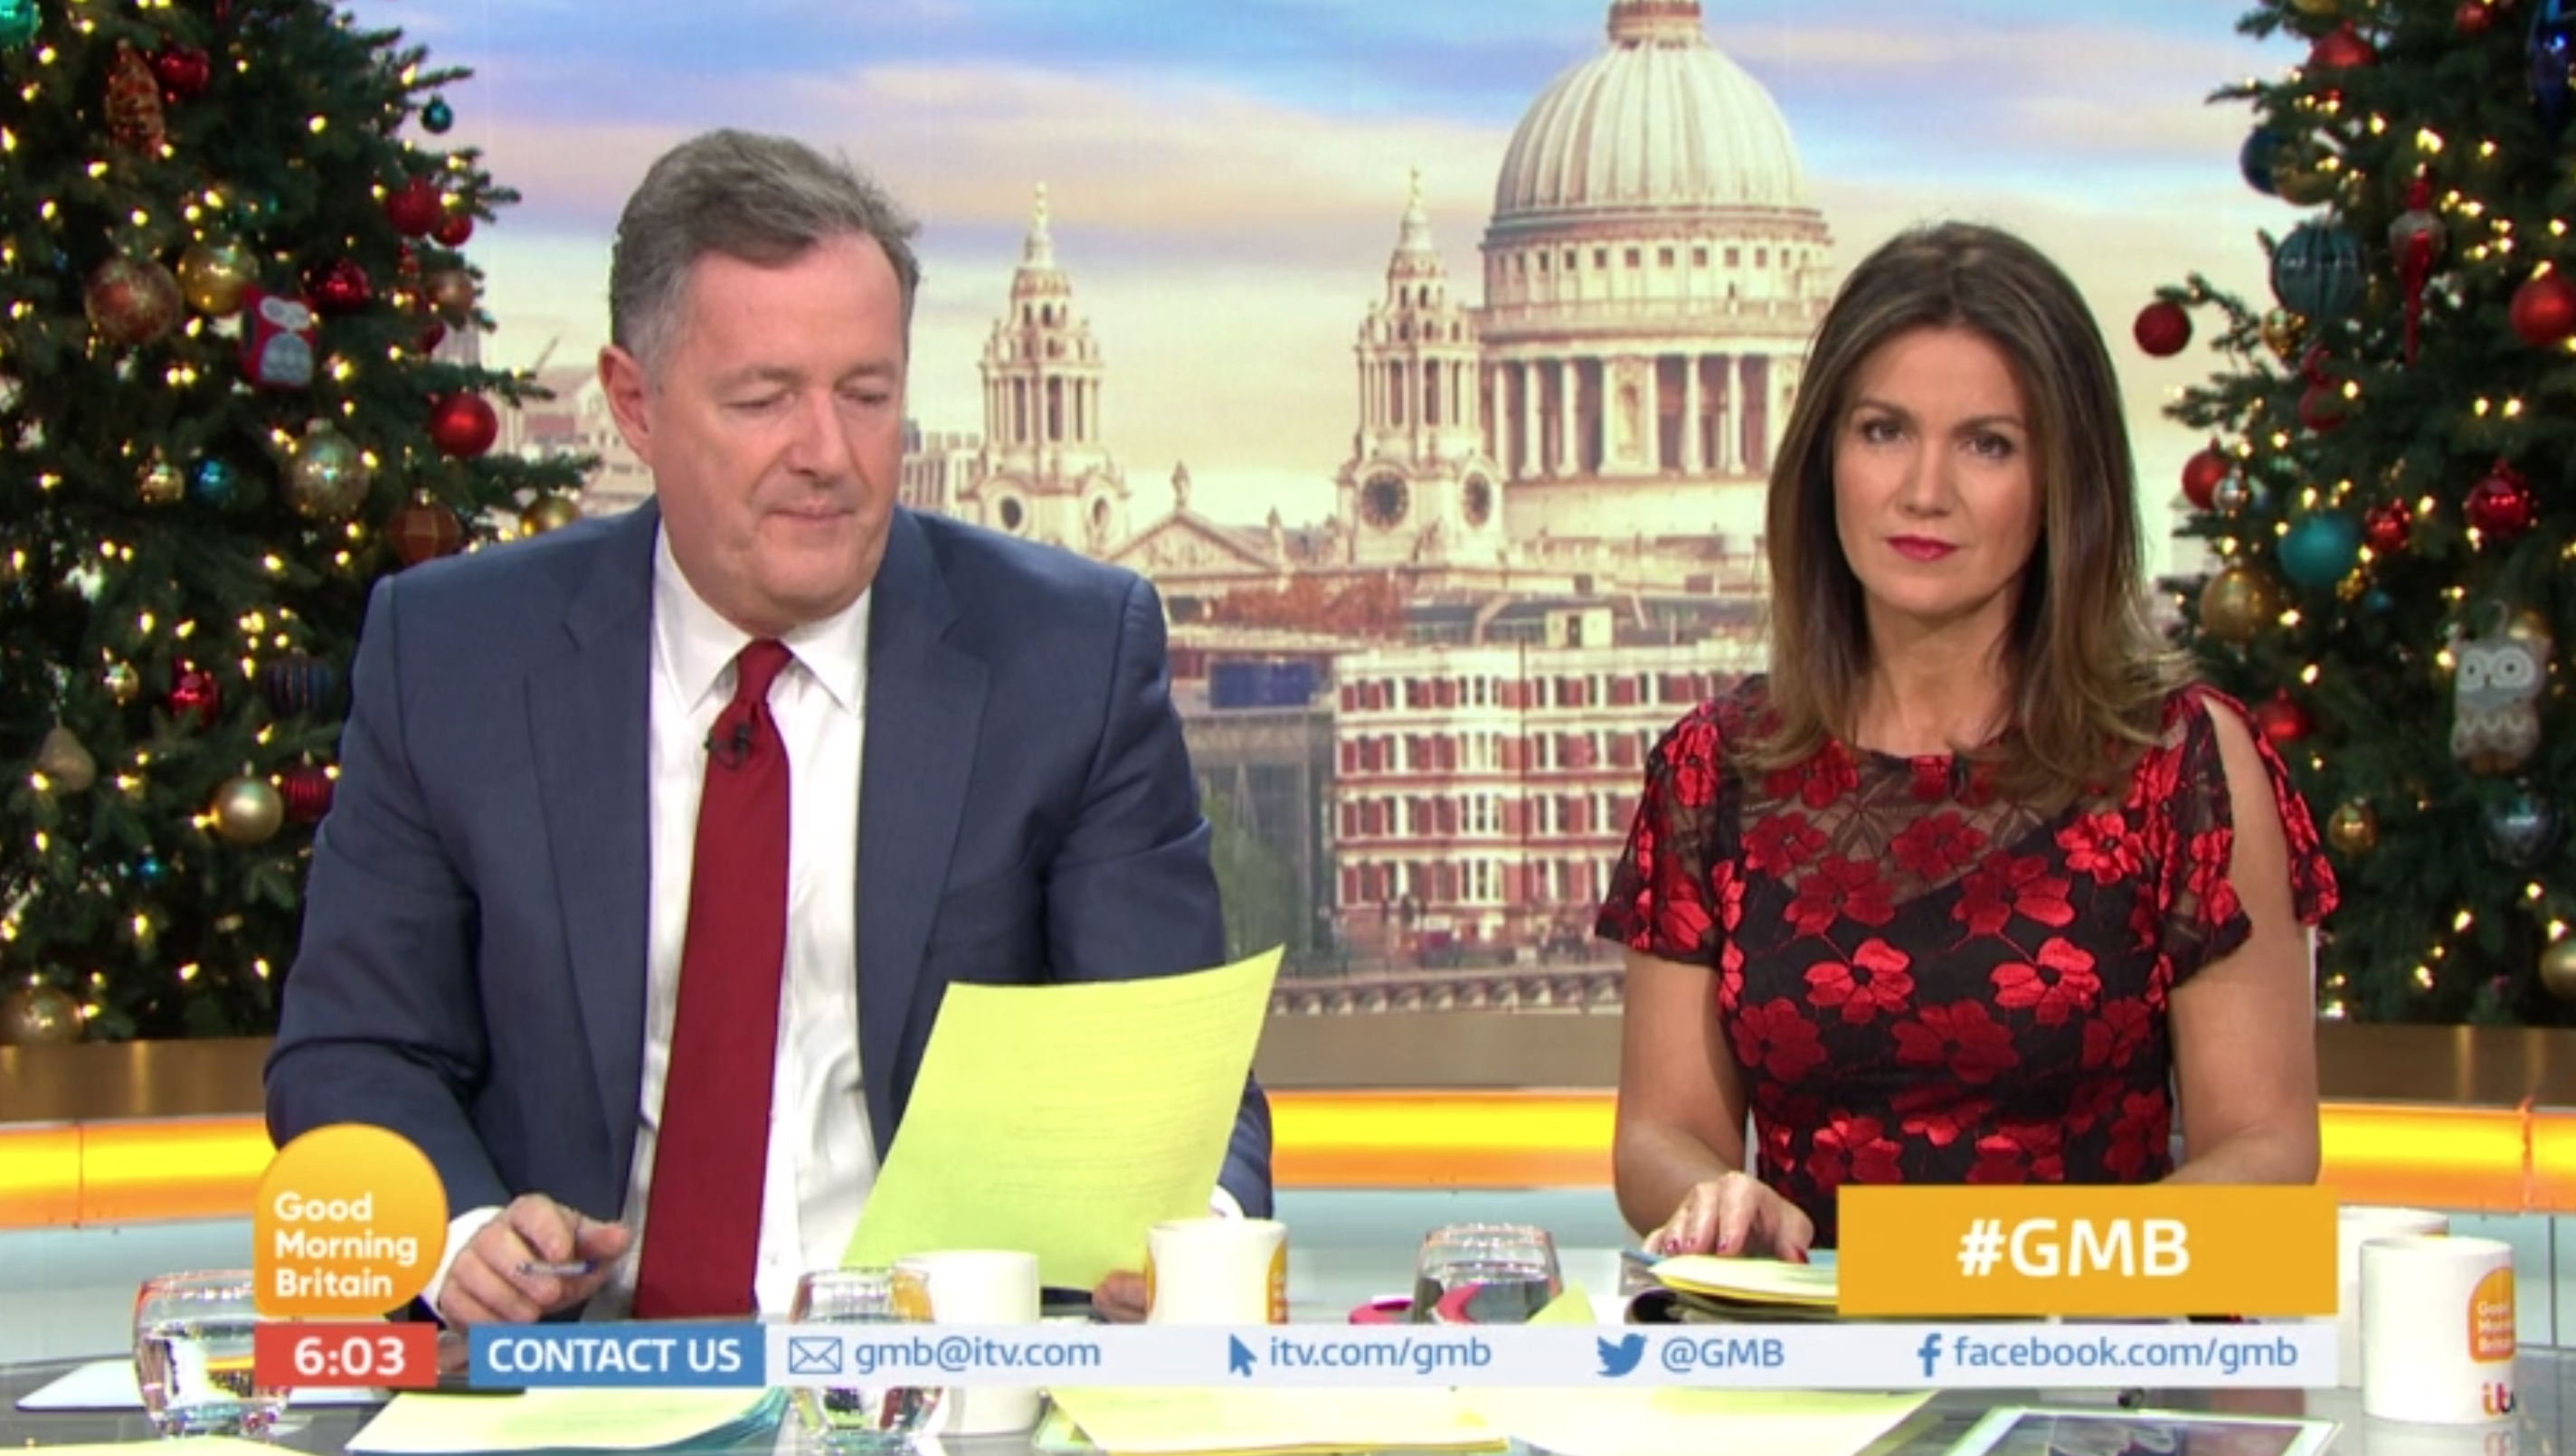 Piers Morgan rages over poll suggesting Father Christmas should be gender neutral or female